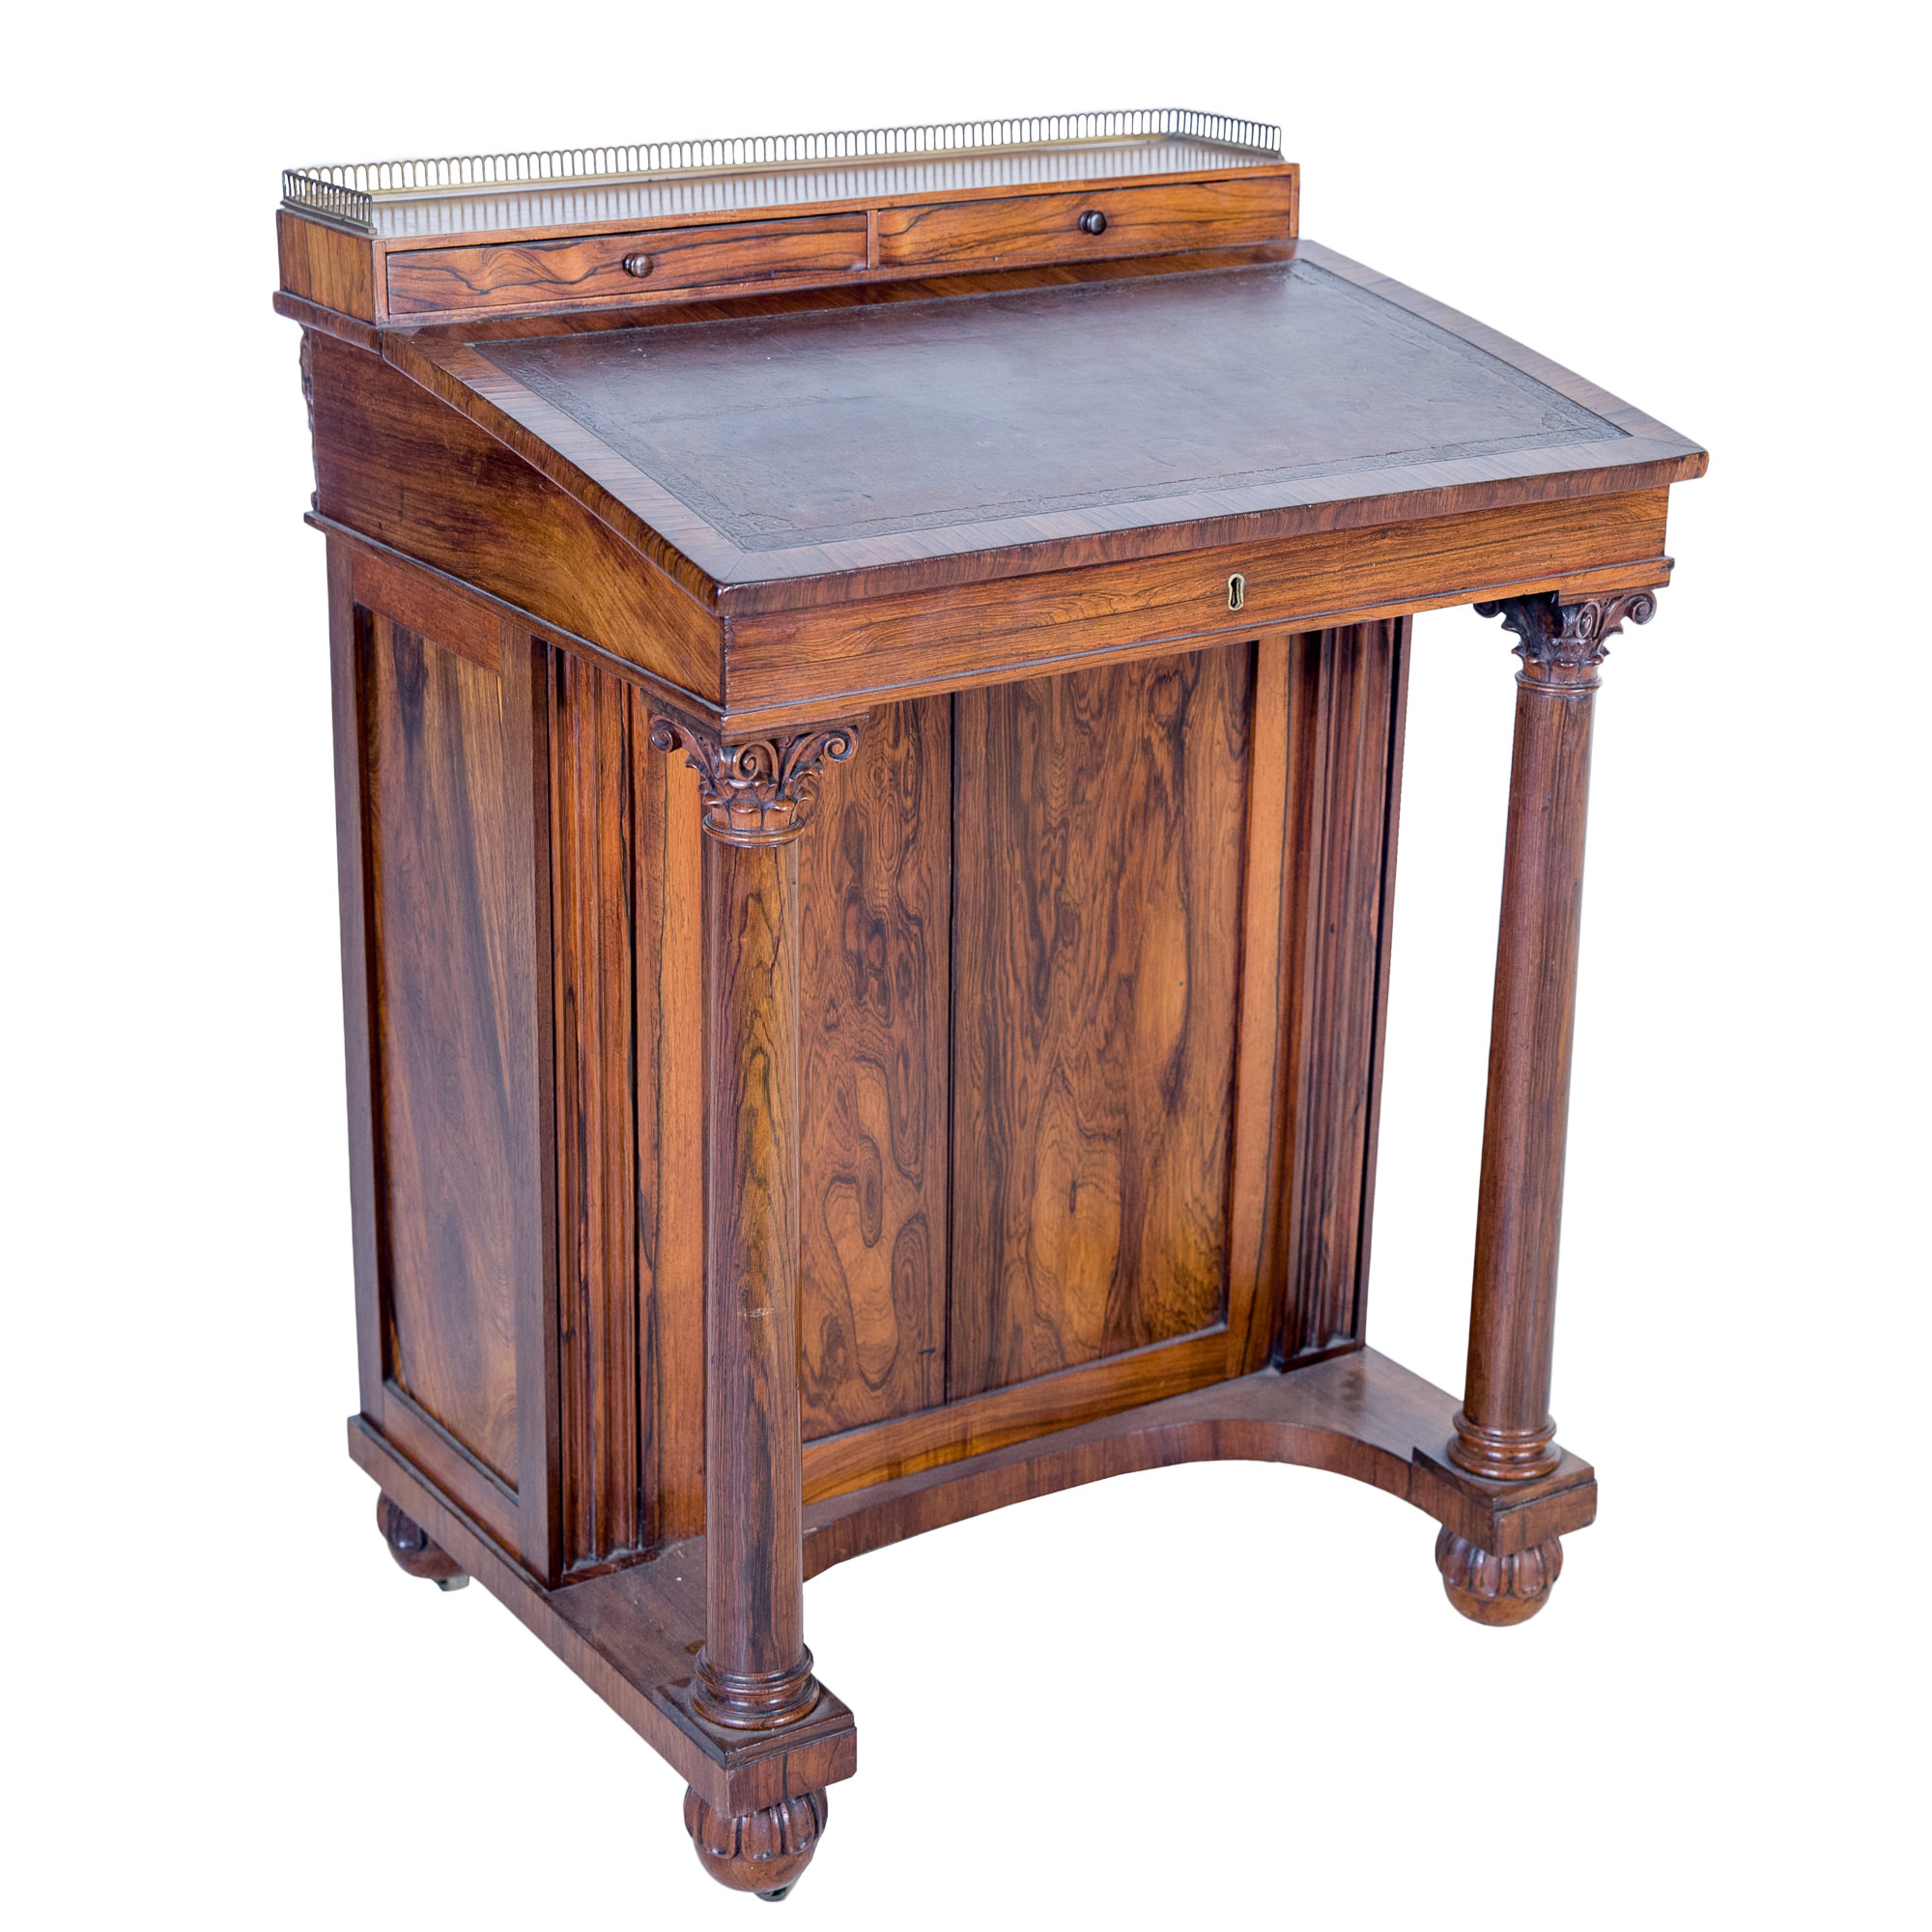 'William IV Brazilian Rosewood Davenport with Brass Gallery and Tooled Leather Inlay Circa 1835'